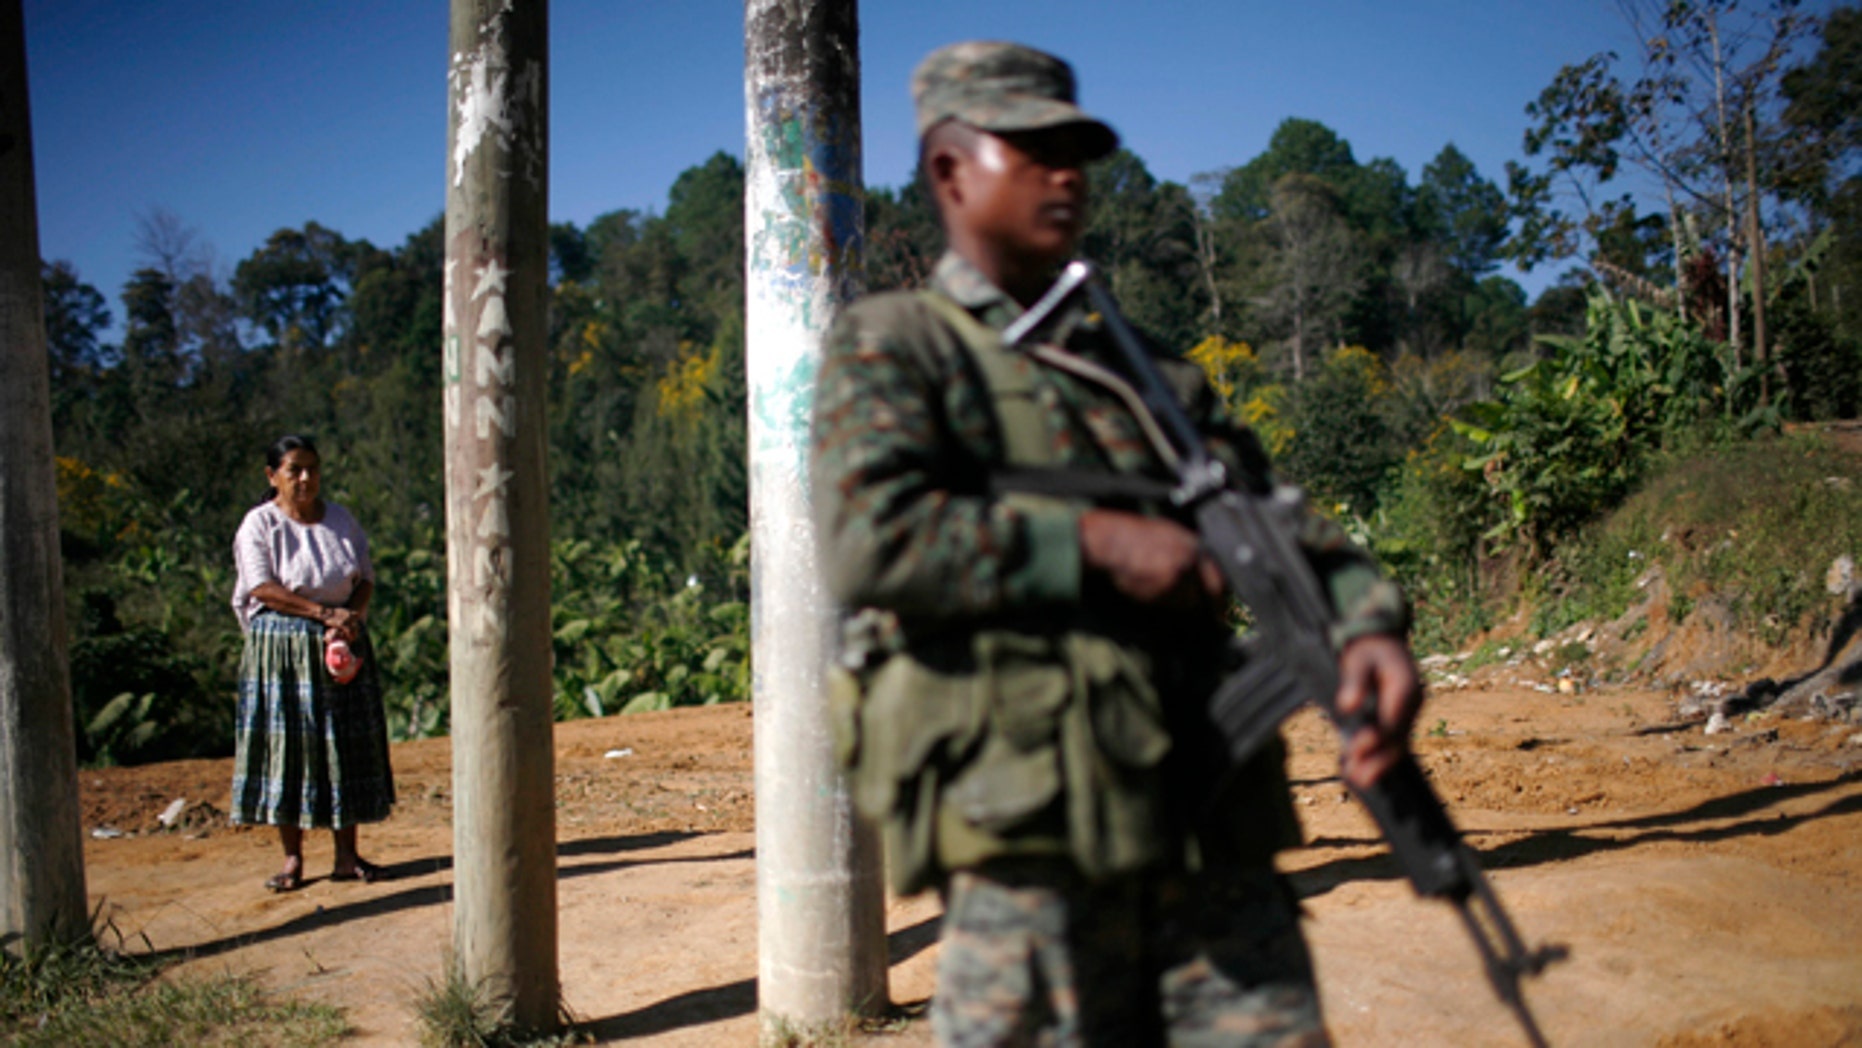 A woman waits for a bus as a soldier stands guard at a checkpoint in Coban, Guatemala, Tuesday Dec. 21, 2010.  The Guatemalan military declared a monthlong state of siege Sunday in Alta Verapaz in hopes of reclaiming cities that have been taken over by Mexico's brutal Zetas drug gang. Local leaders of the mountainous northern province, which has become a prime corridor for smuggling drugs from Honduras to Mexico, say they have been asking state and federal authorities to intervene for two years now. (AP Photo/Rodrigo Abd)